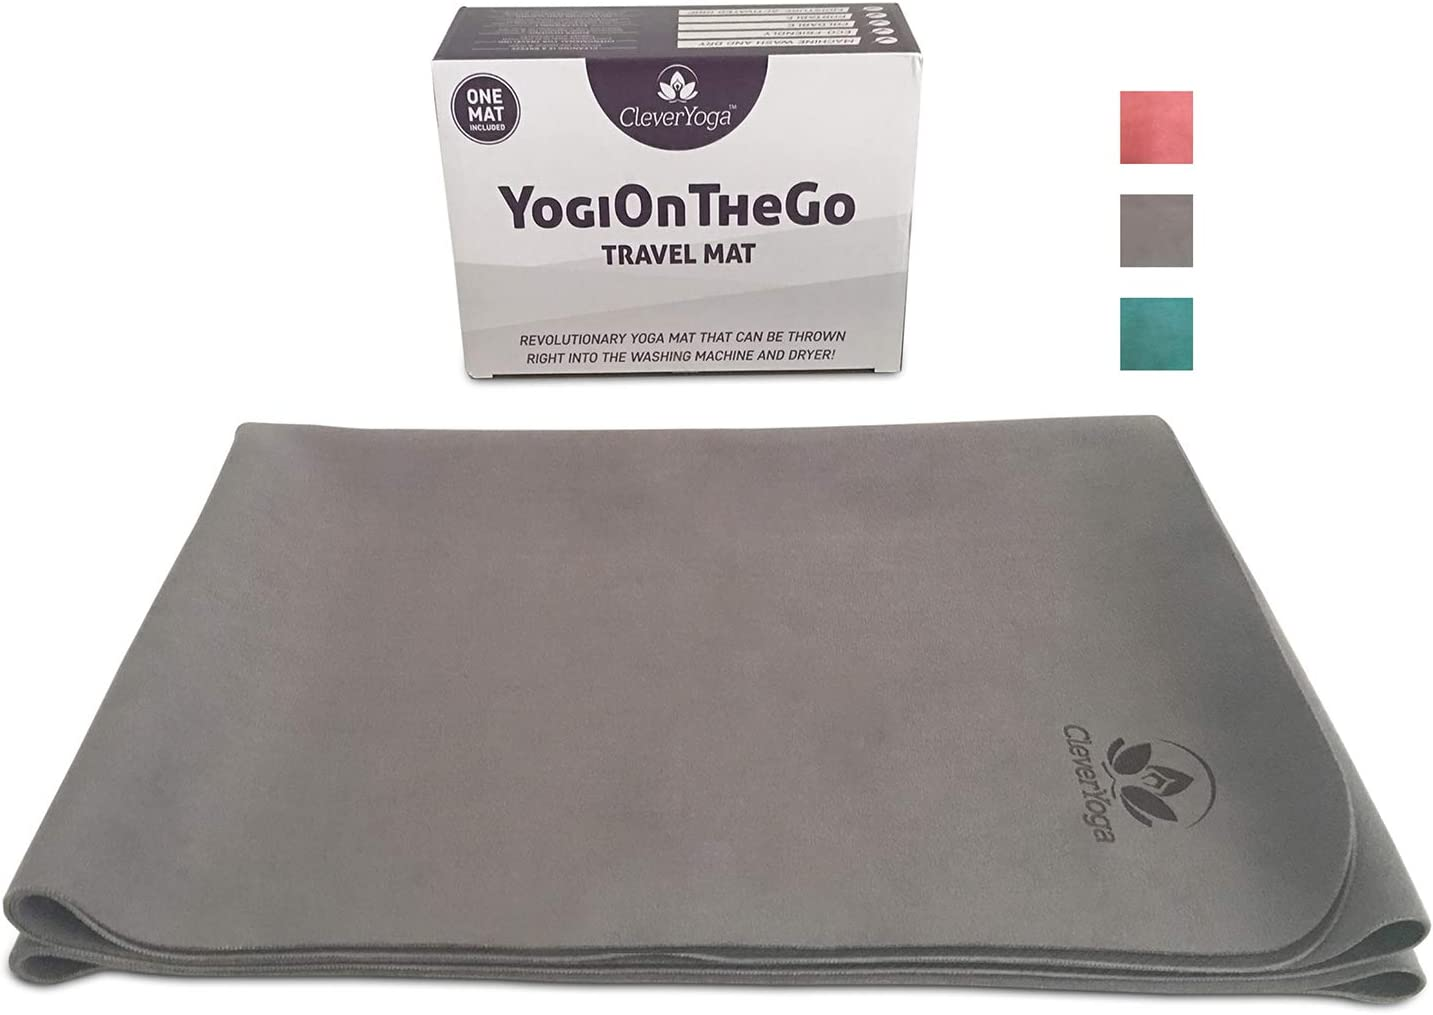 Travel Yoga Mat – Foldable, Absorbent and Machine Washable and Dry – Non Slip Yoga Mats for Bikram and Hot Yoga – YogiOnTheGo Thin Hot Yoga Mat